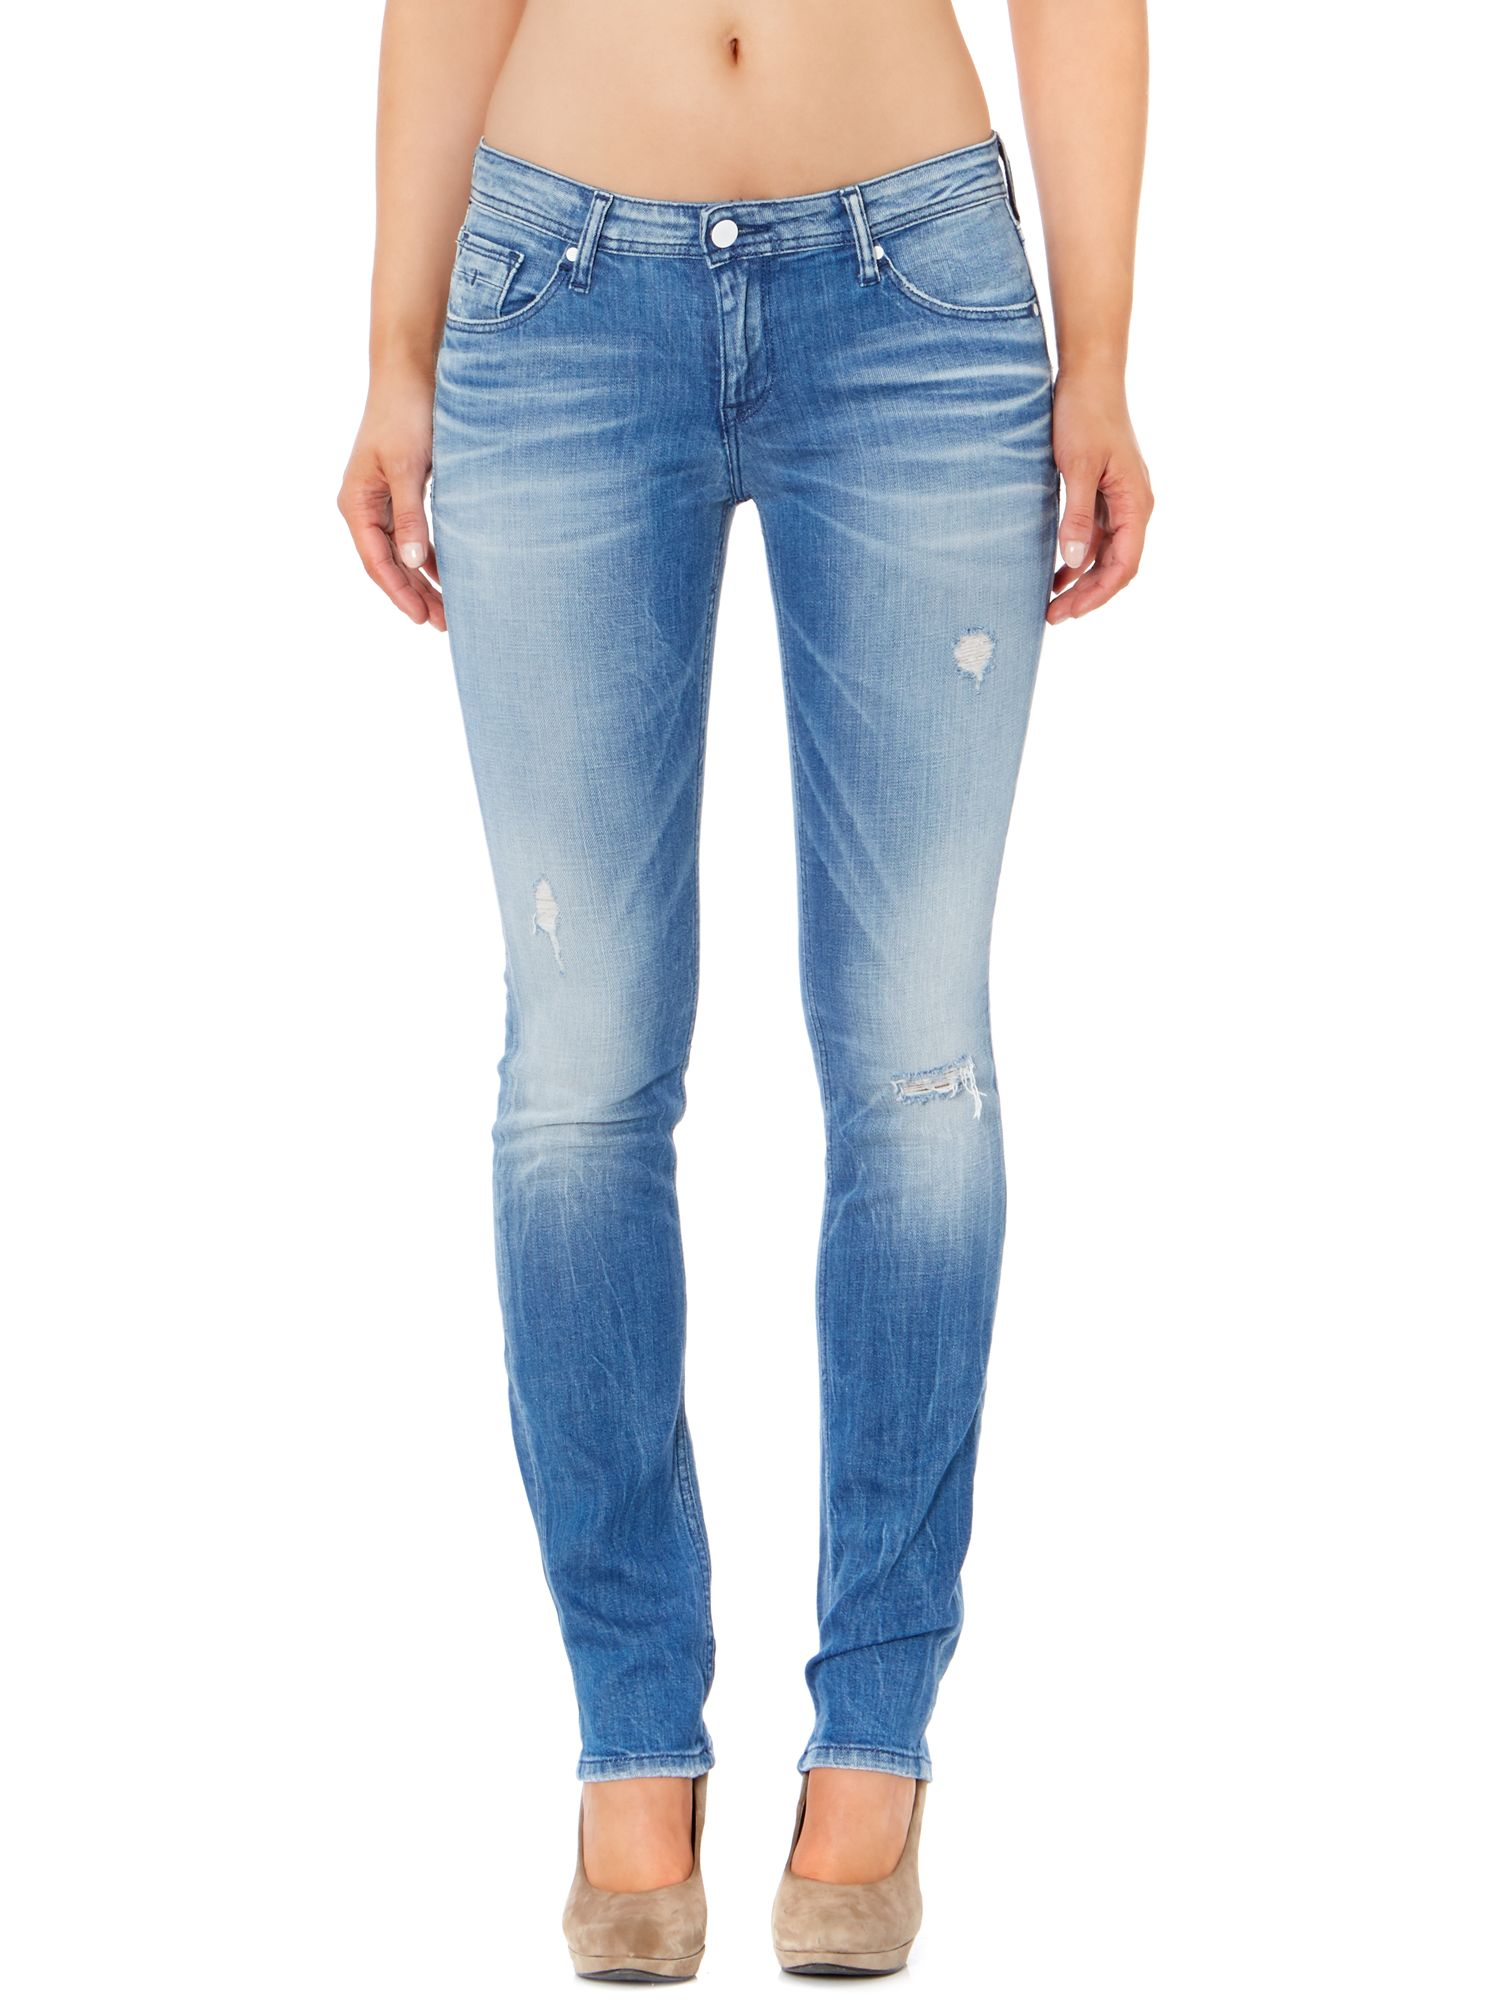 Skinny mid rise jeans